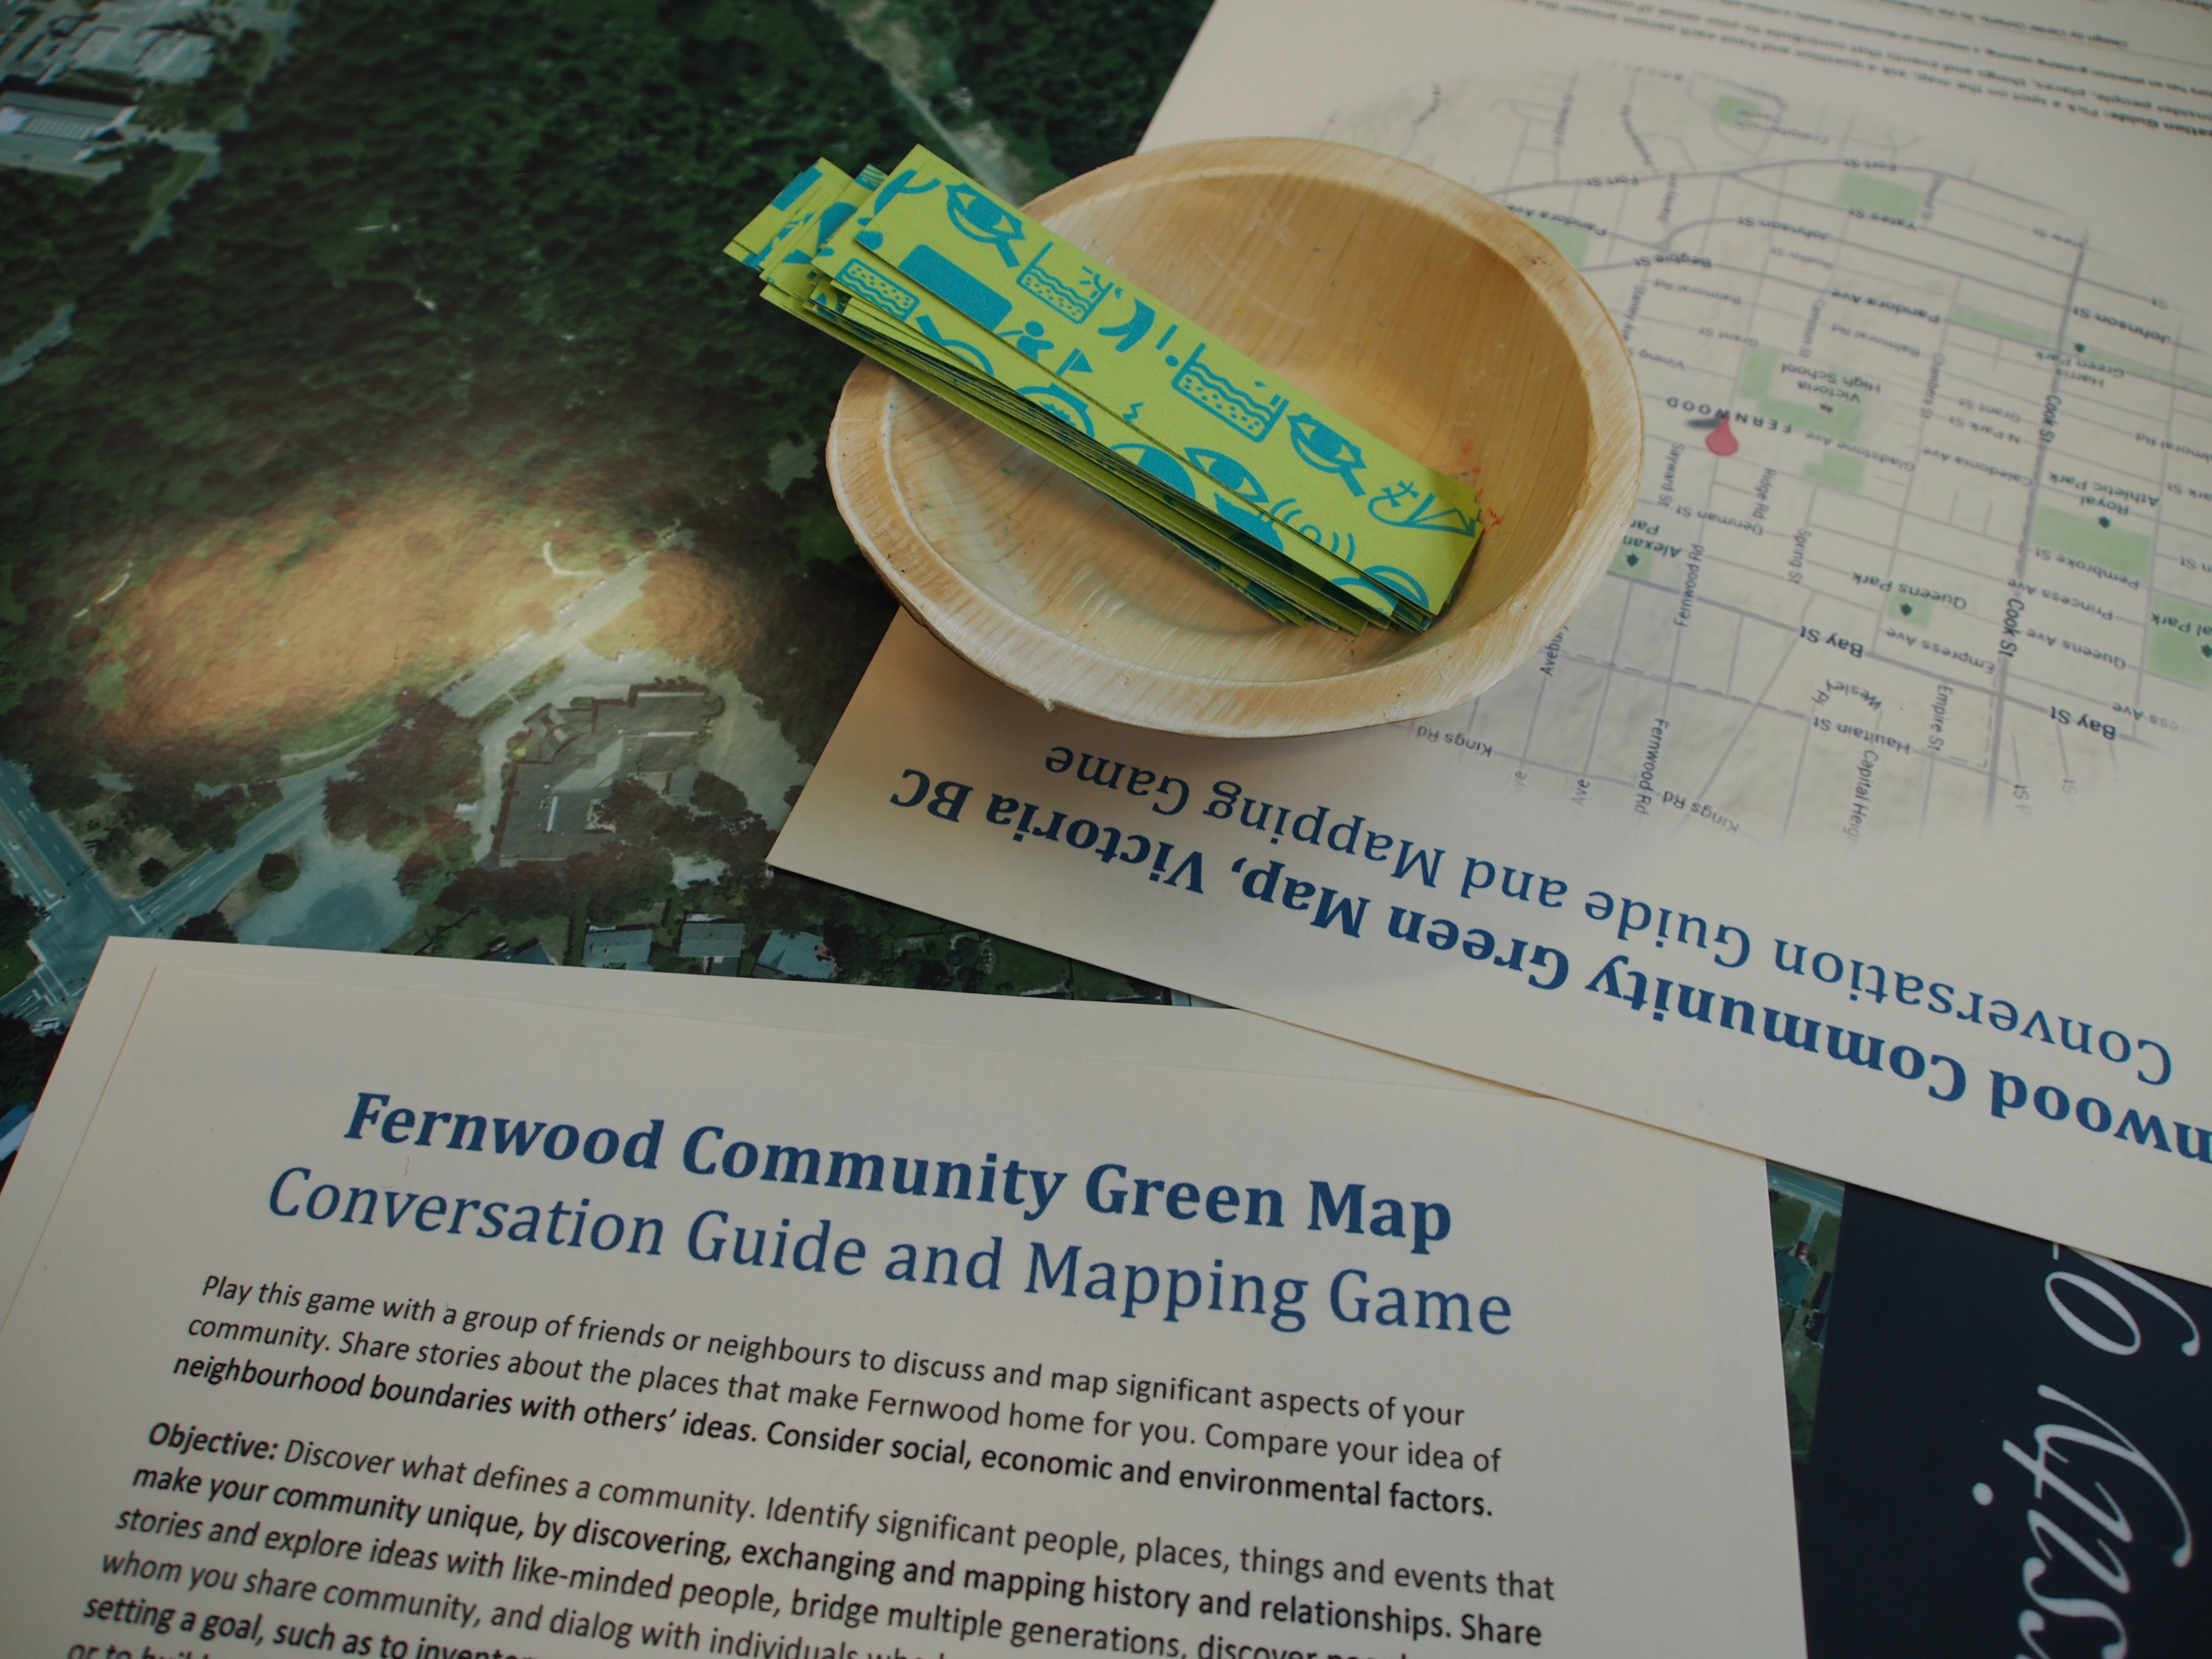 Fernwood conversation guide and mapping game by Dan Dougherty